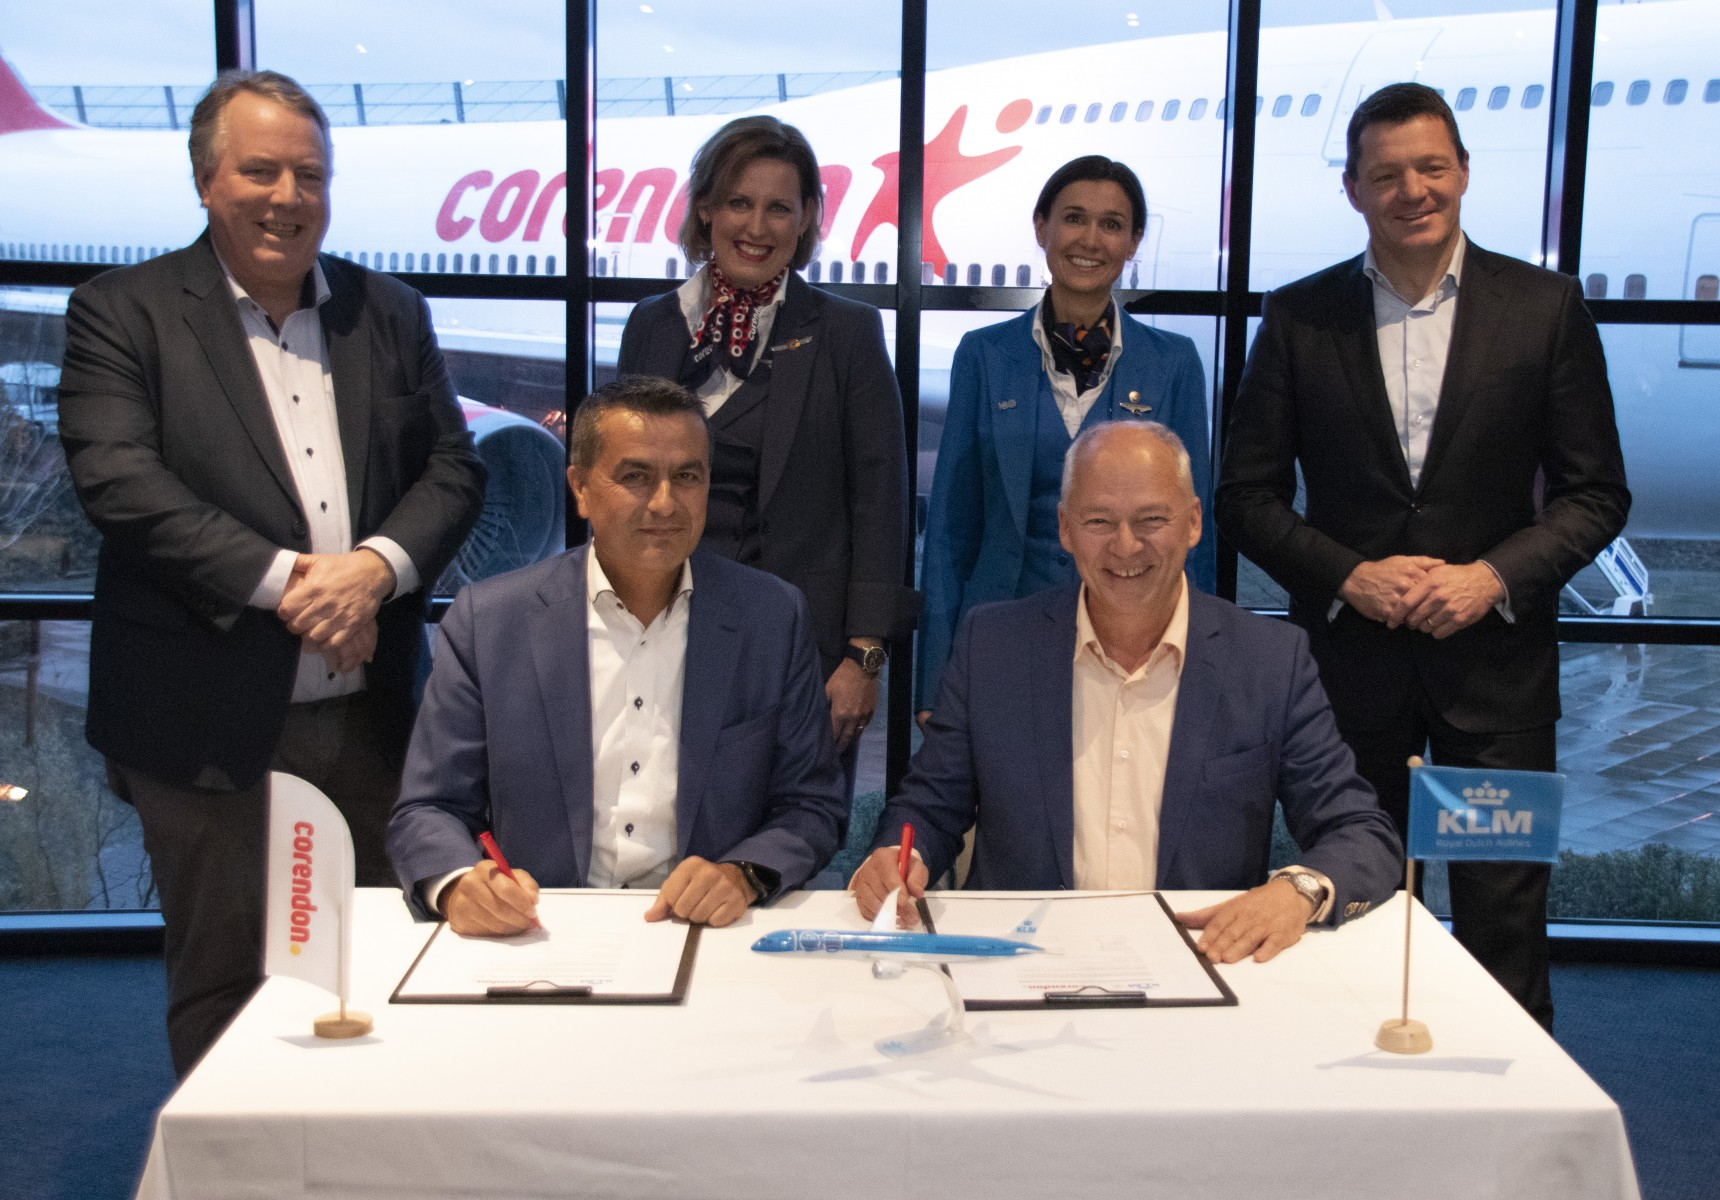 Ondertekening contract Curacao KLM Corendon